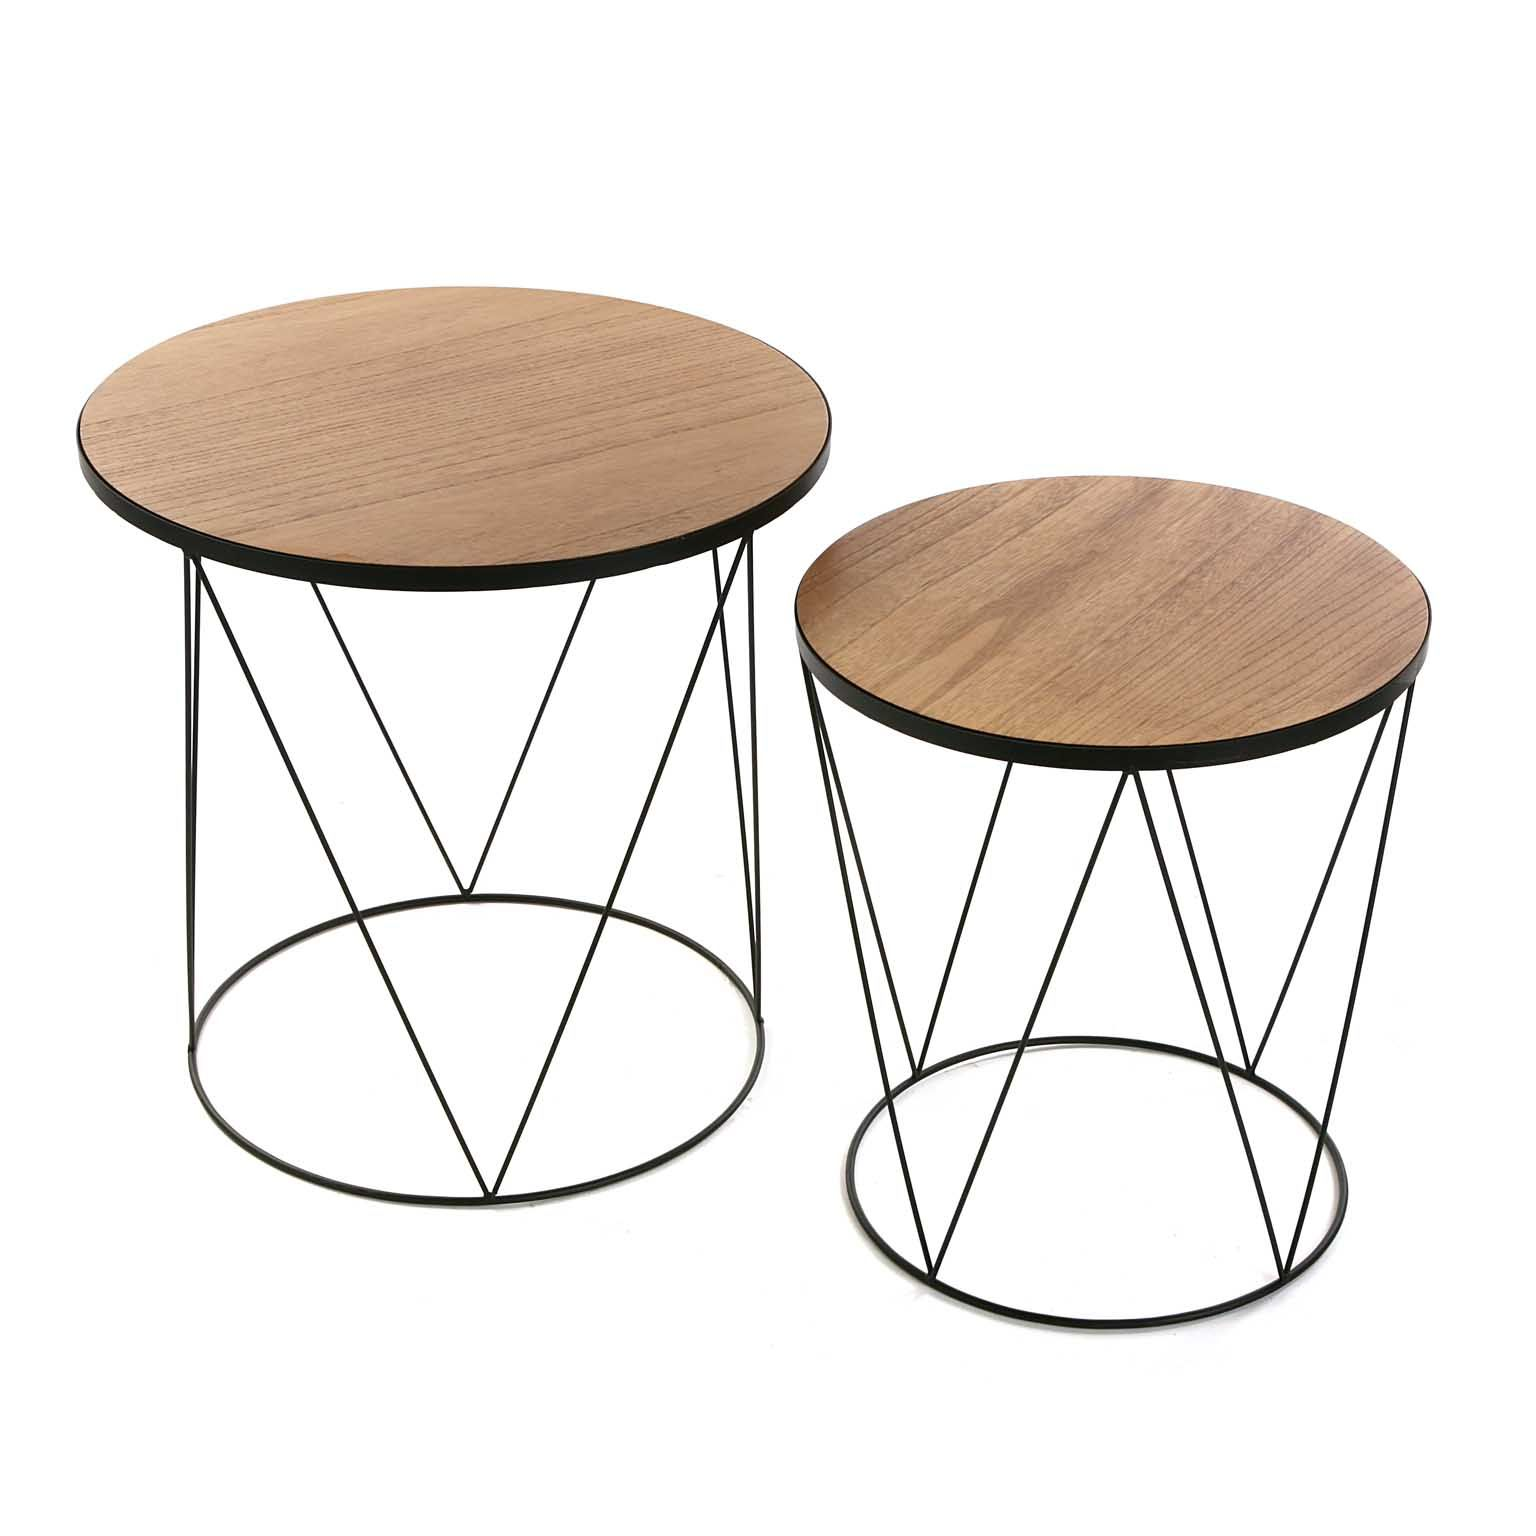 Table Basse Moderne Modulable Italienne Wind Table Basse Modulable Table Relevable Table Basse